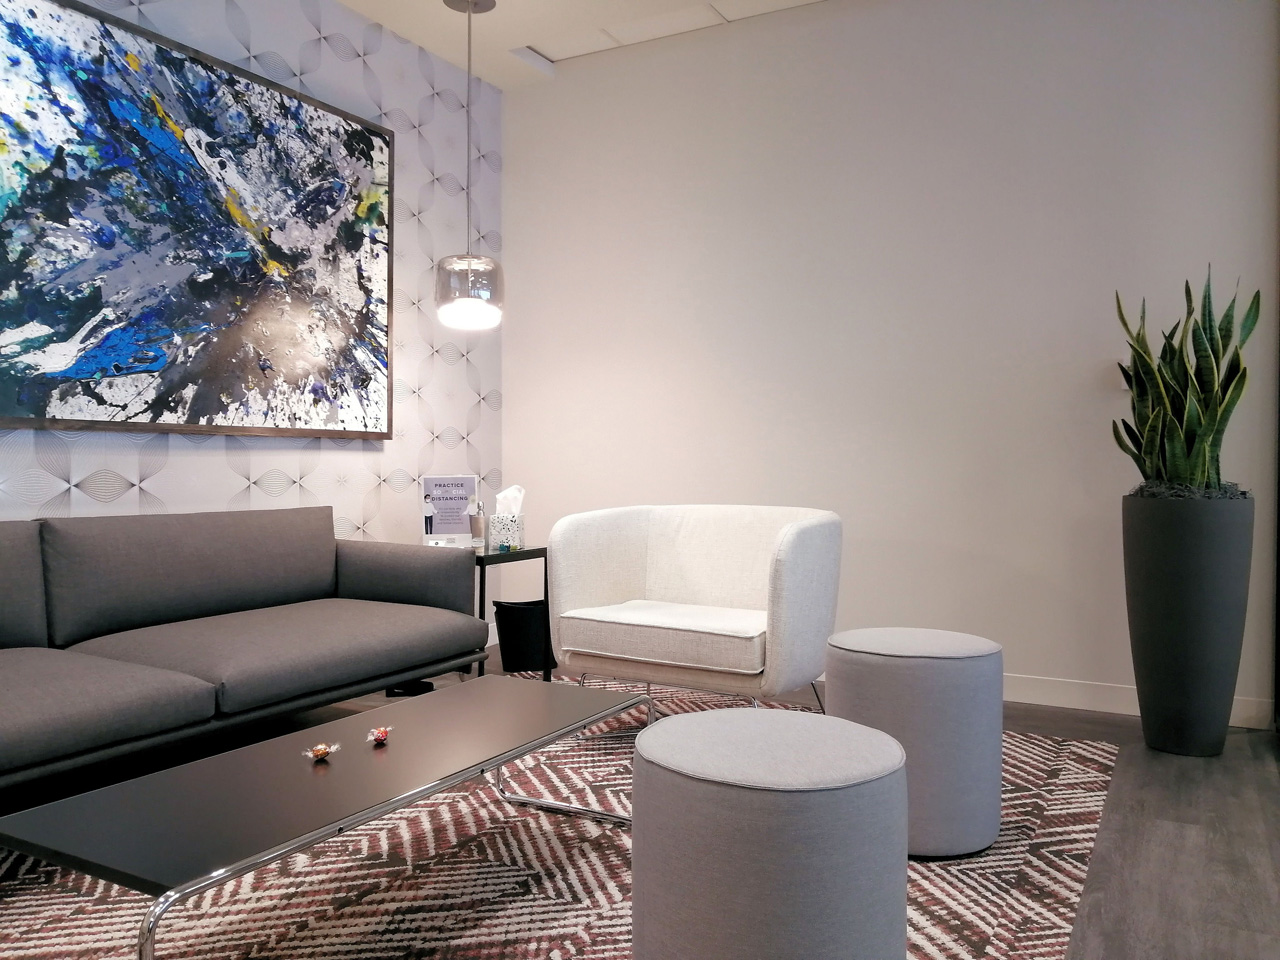 Biophilic design can be clean and simple like this reception space